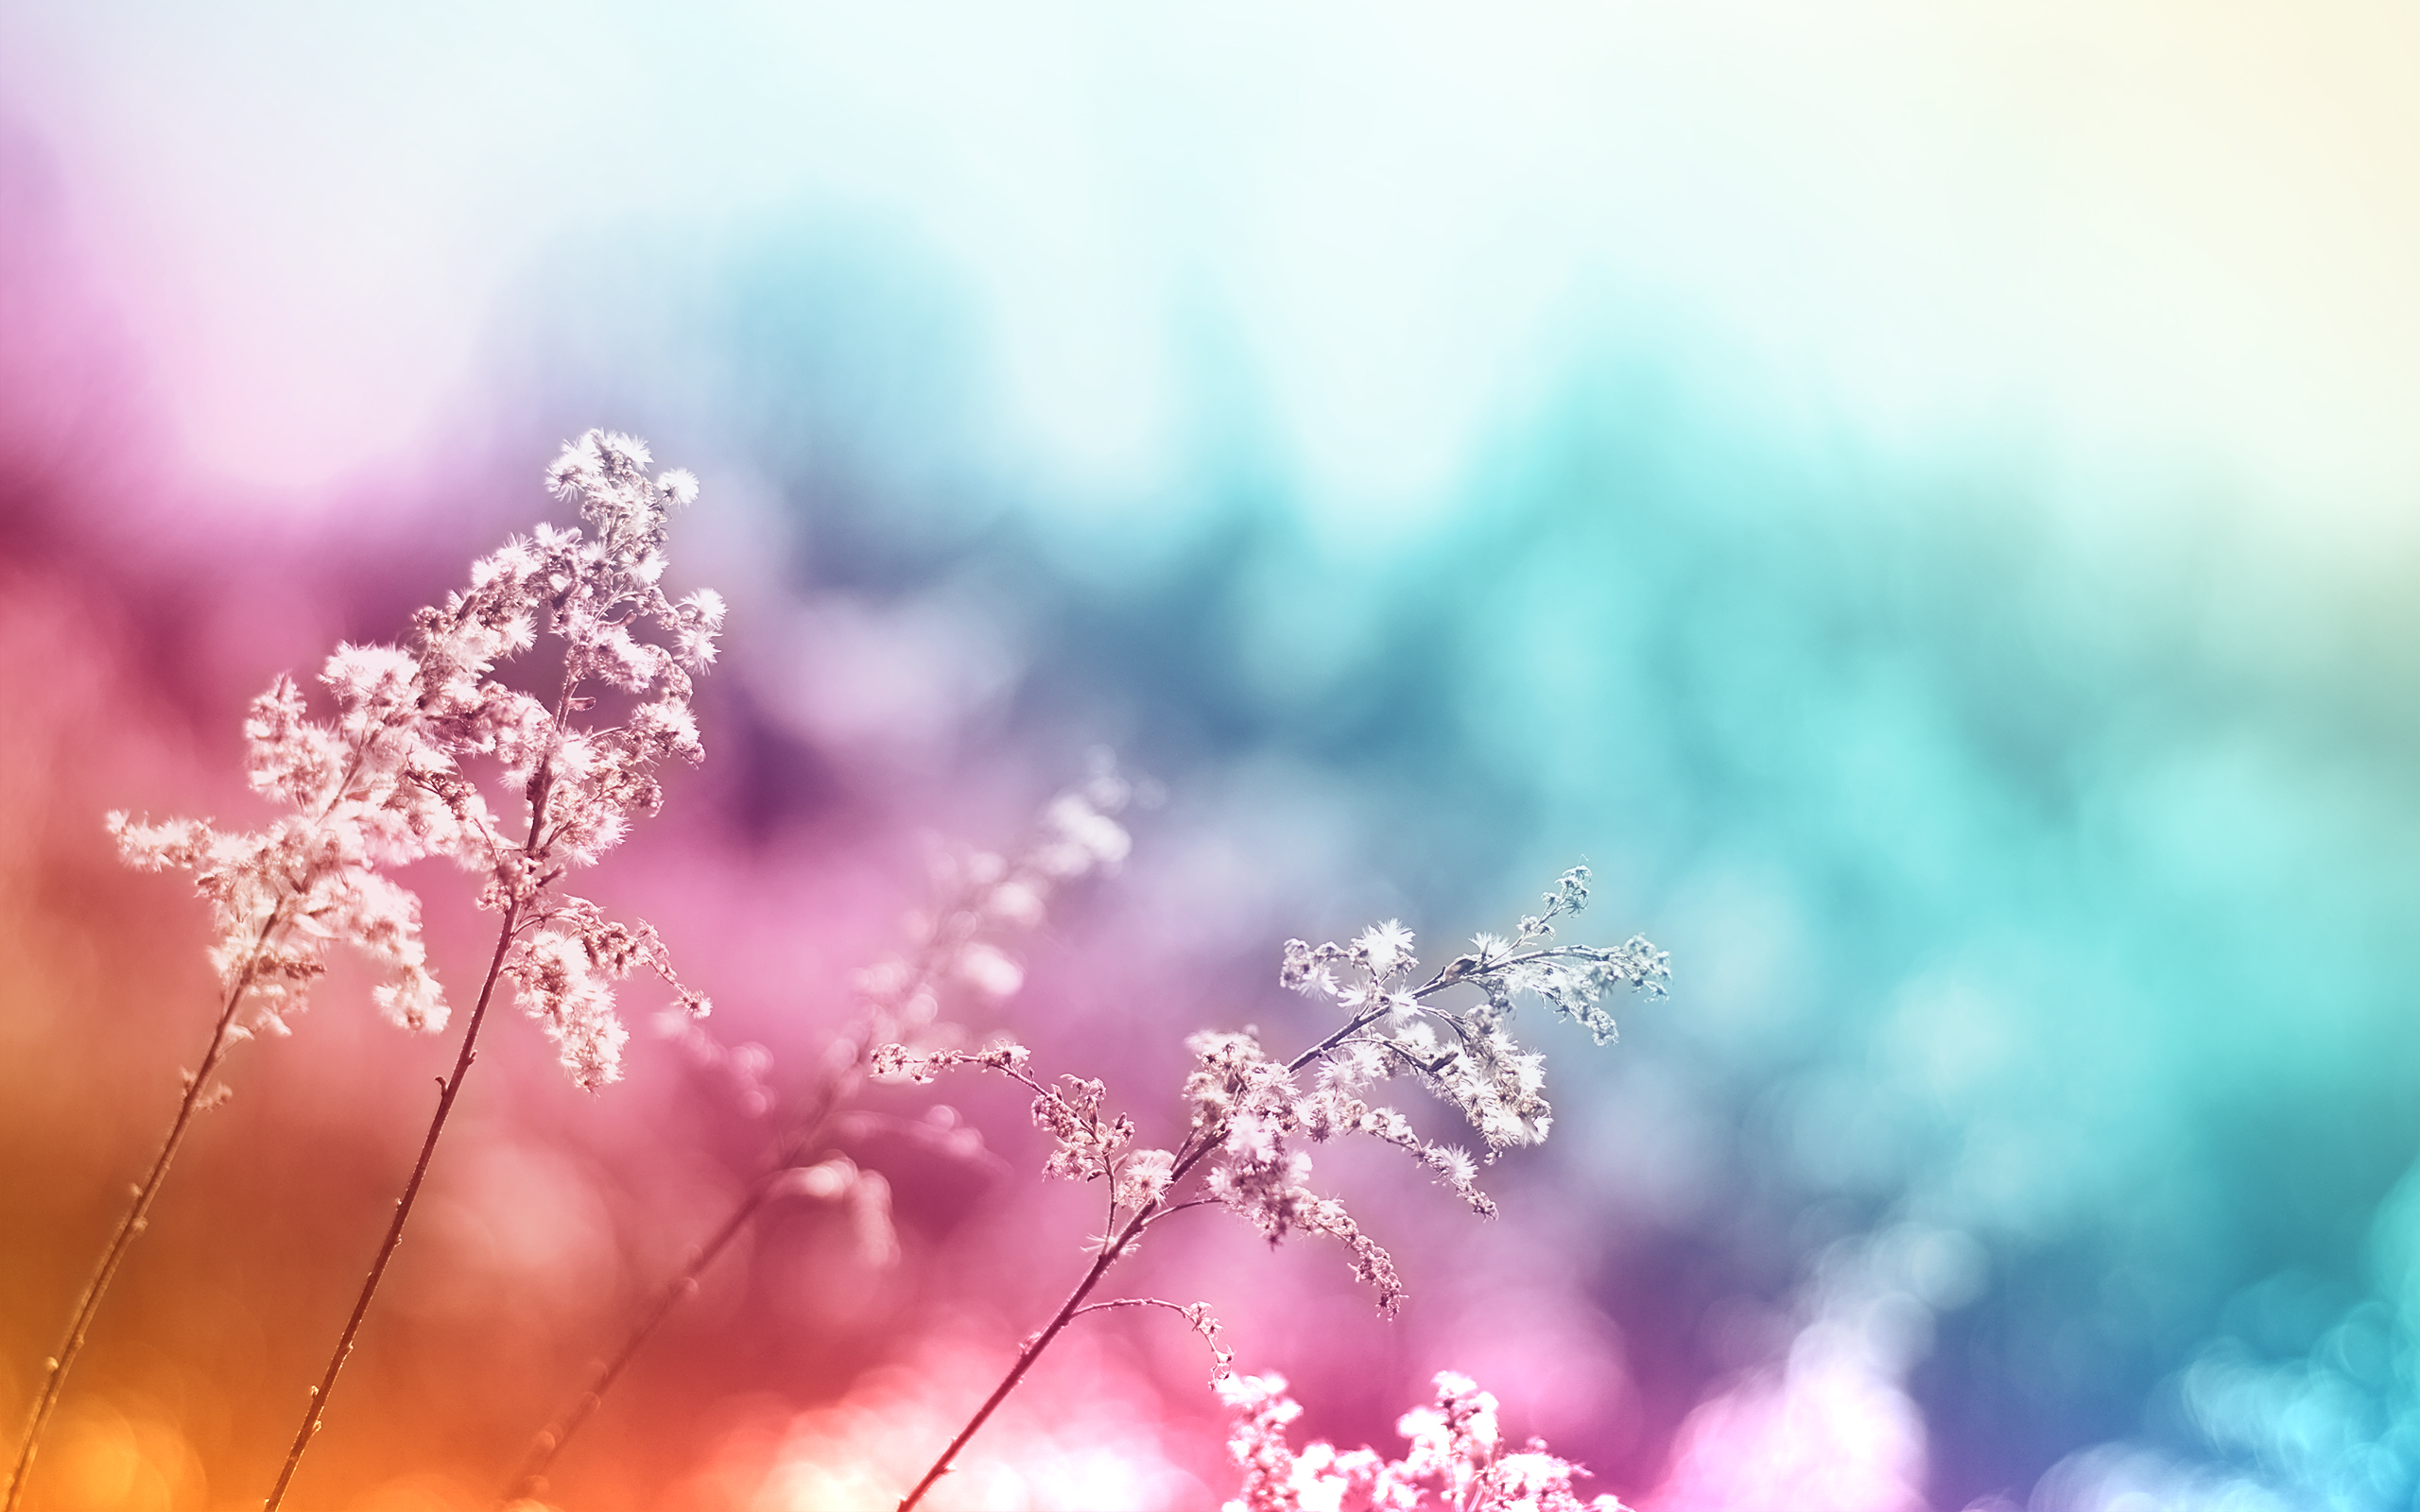 fine abstract desktop backgrounds - photo #44